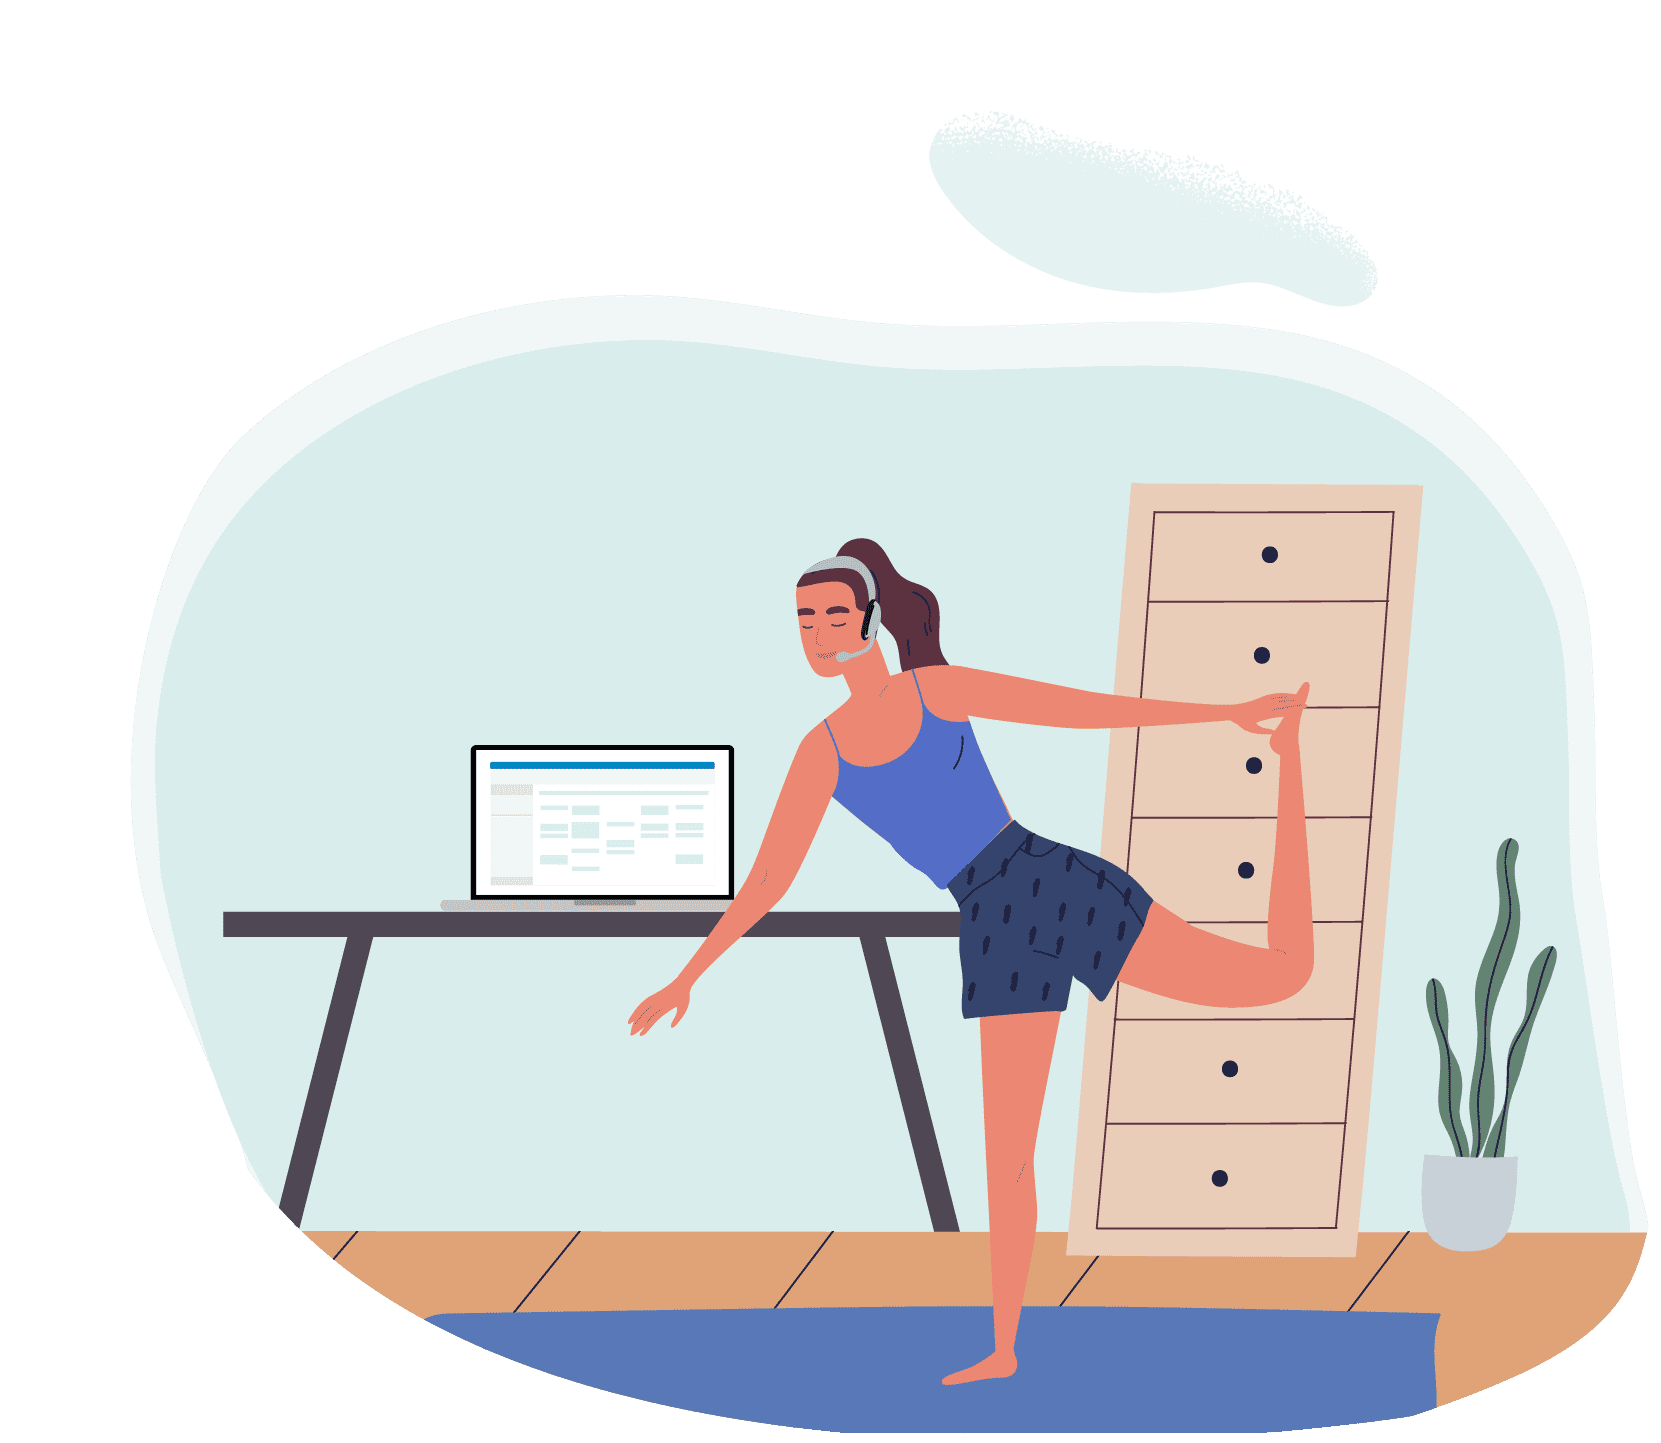 Asset 9 - Working from Home for Beginners: Tips from a WFH Veteran